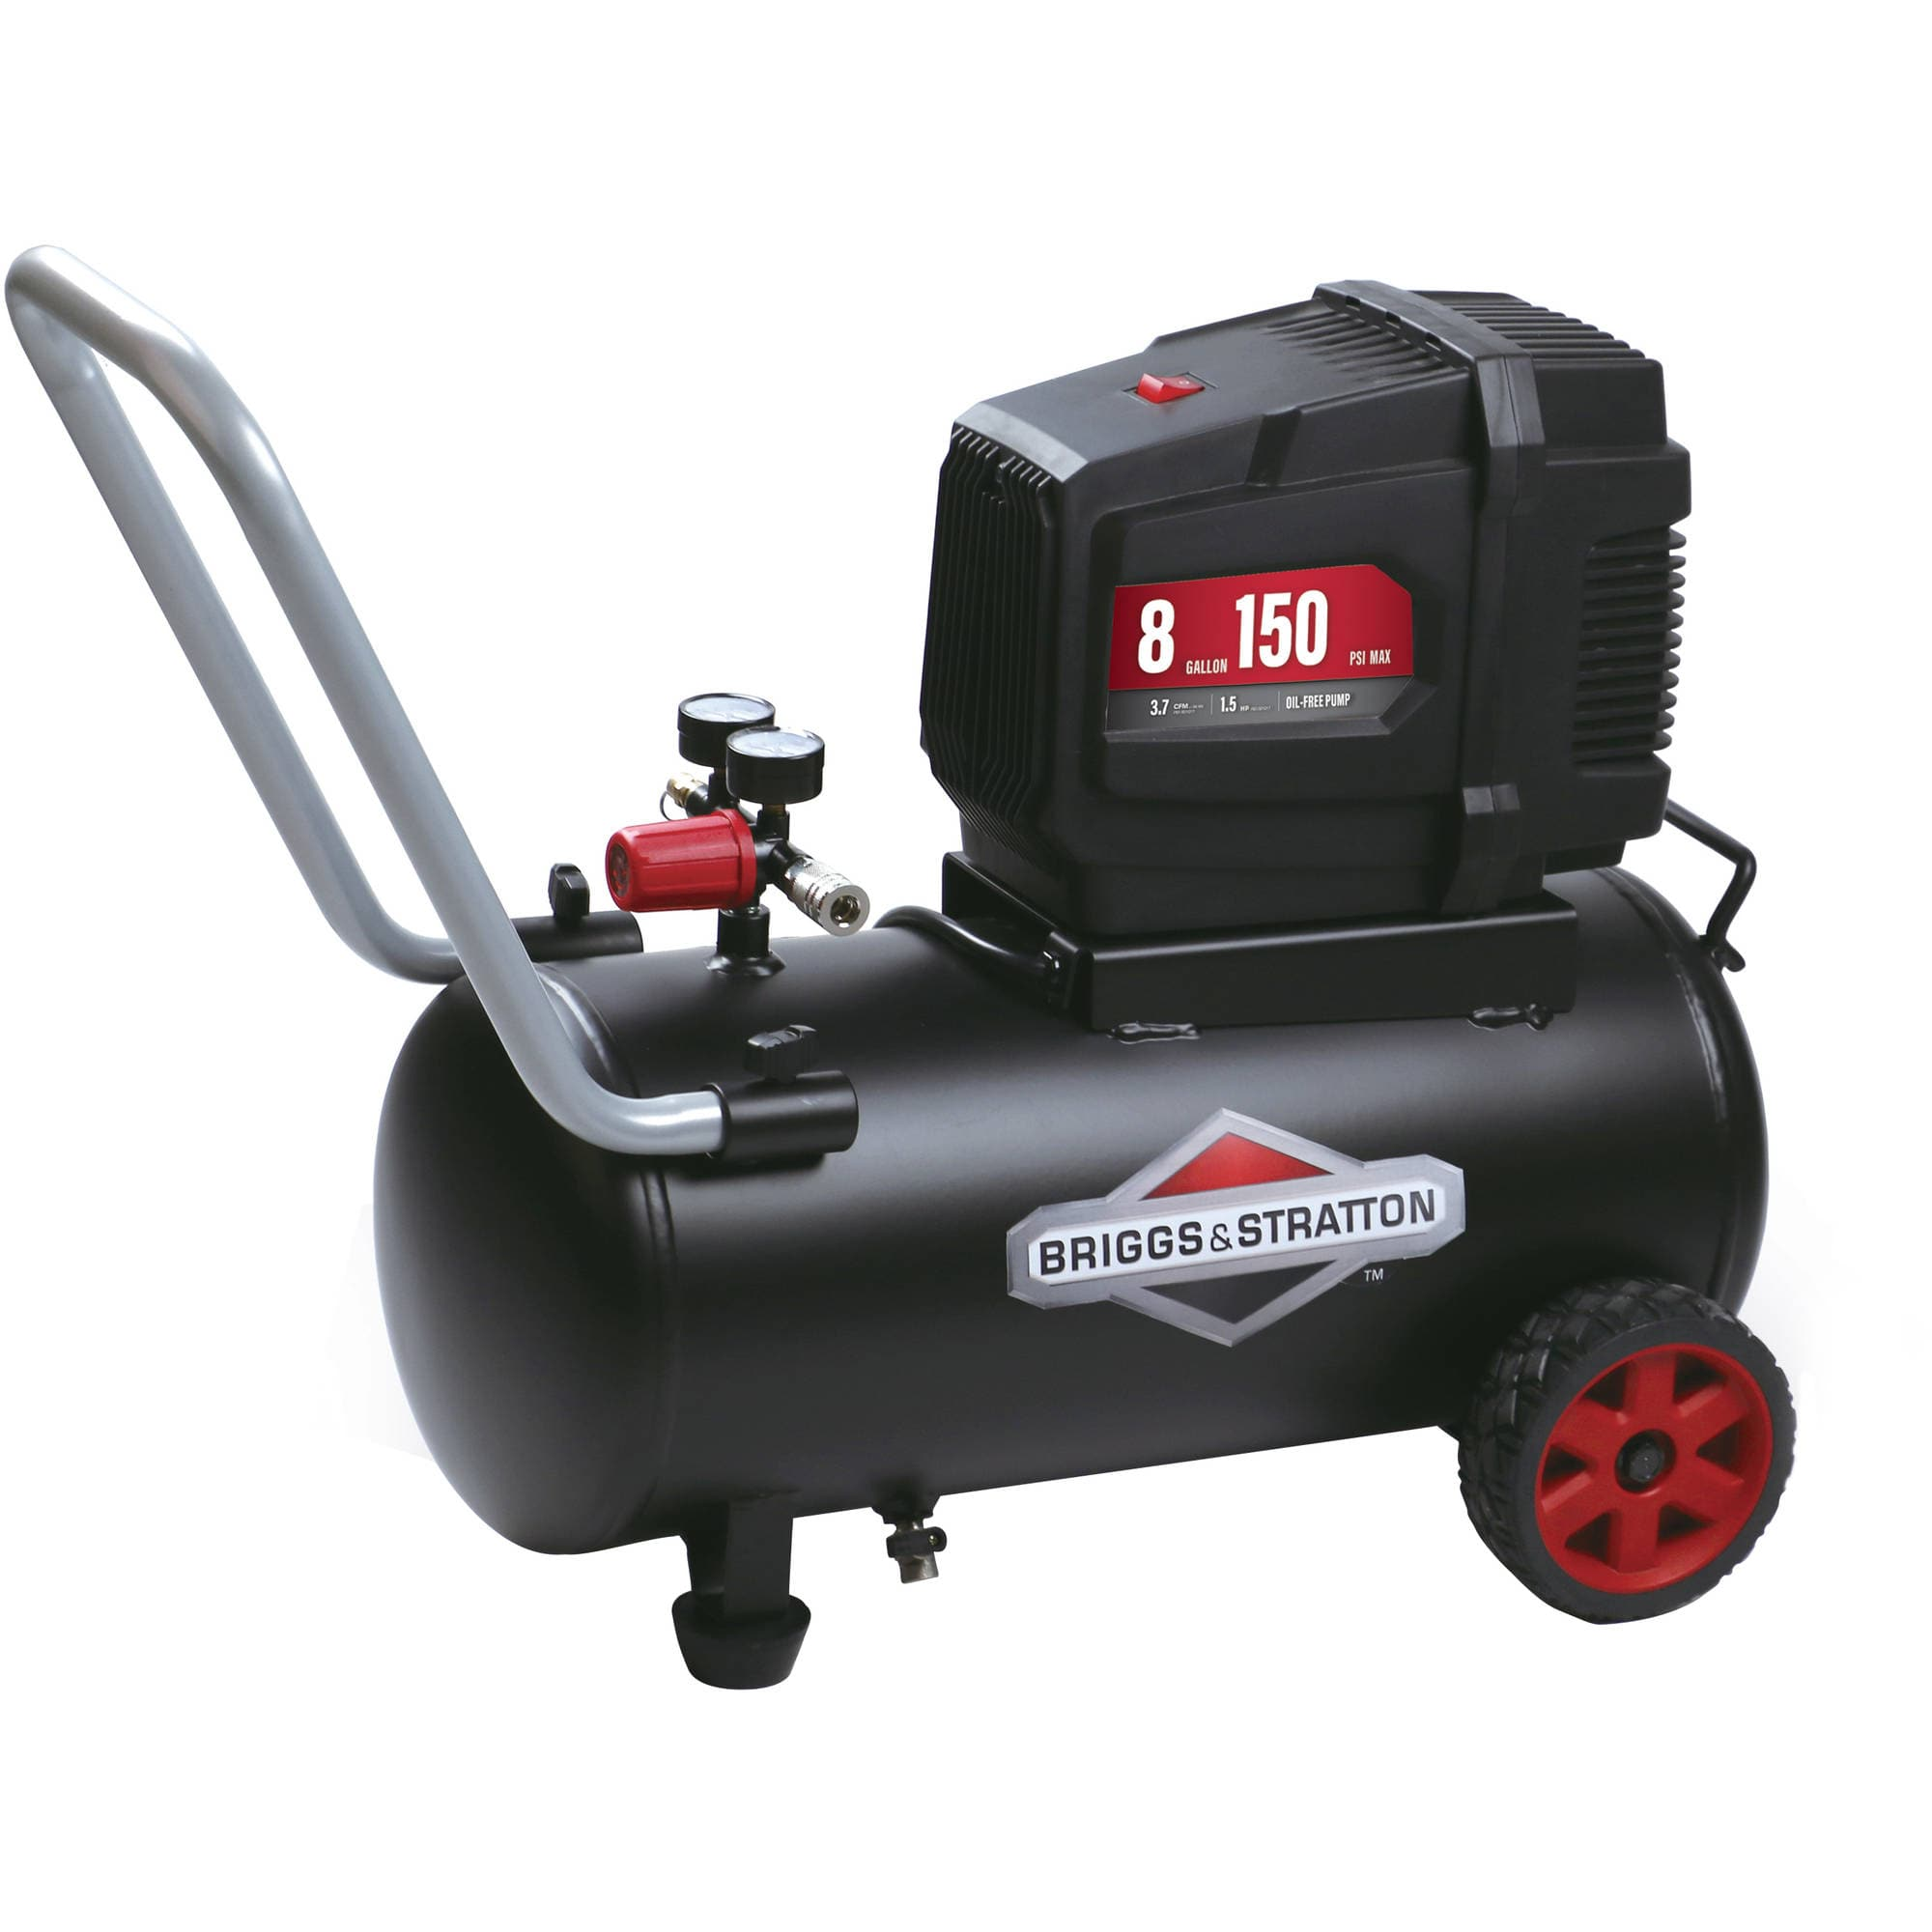 Briggs & Stratton 8 Gallon Hotdog Oil-free Air Compressor as low as $45 YMMV